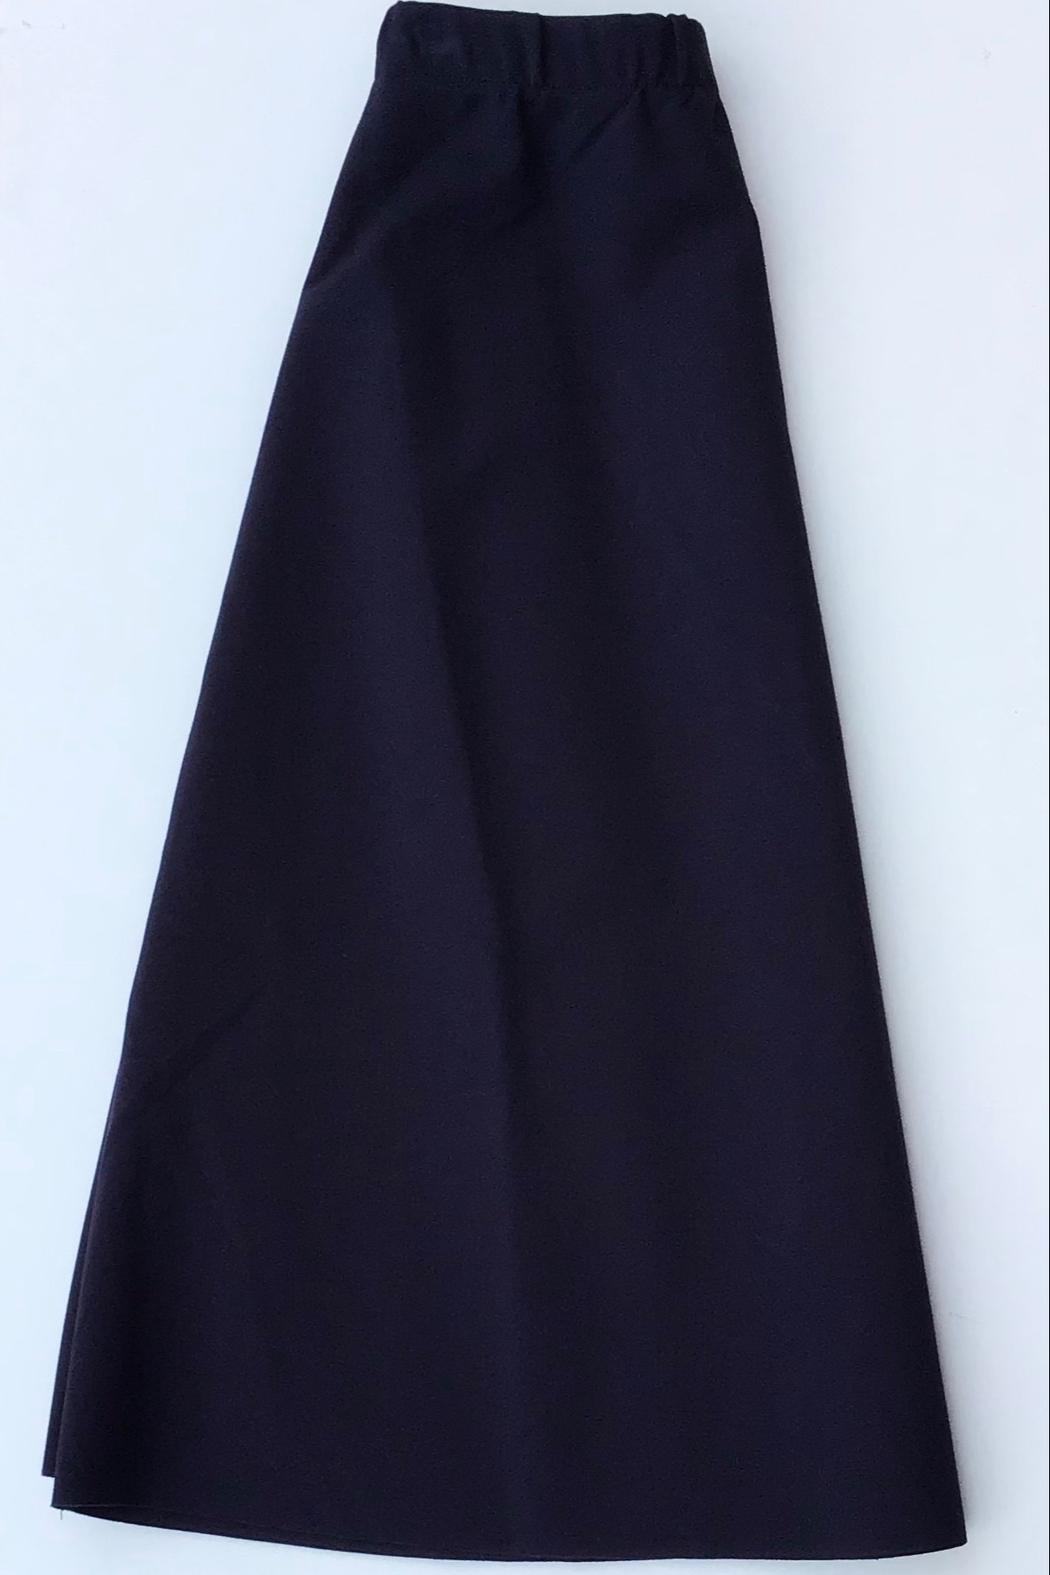 Meli by FAME 3 PANEL SKIRT 23 INCH - Front Cropped Image